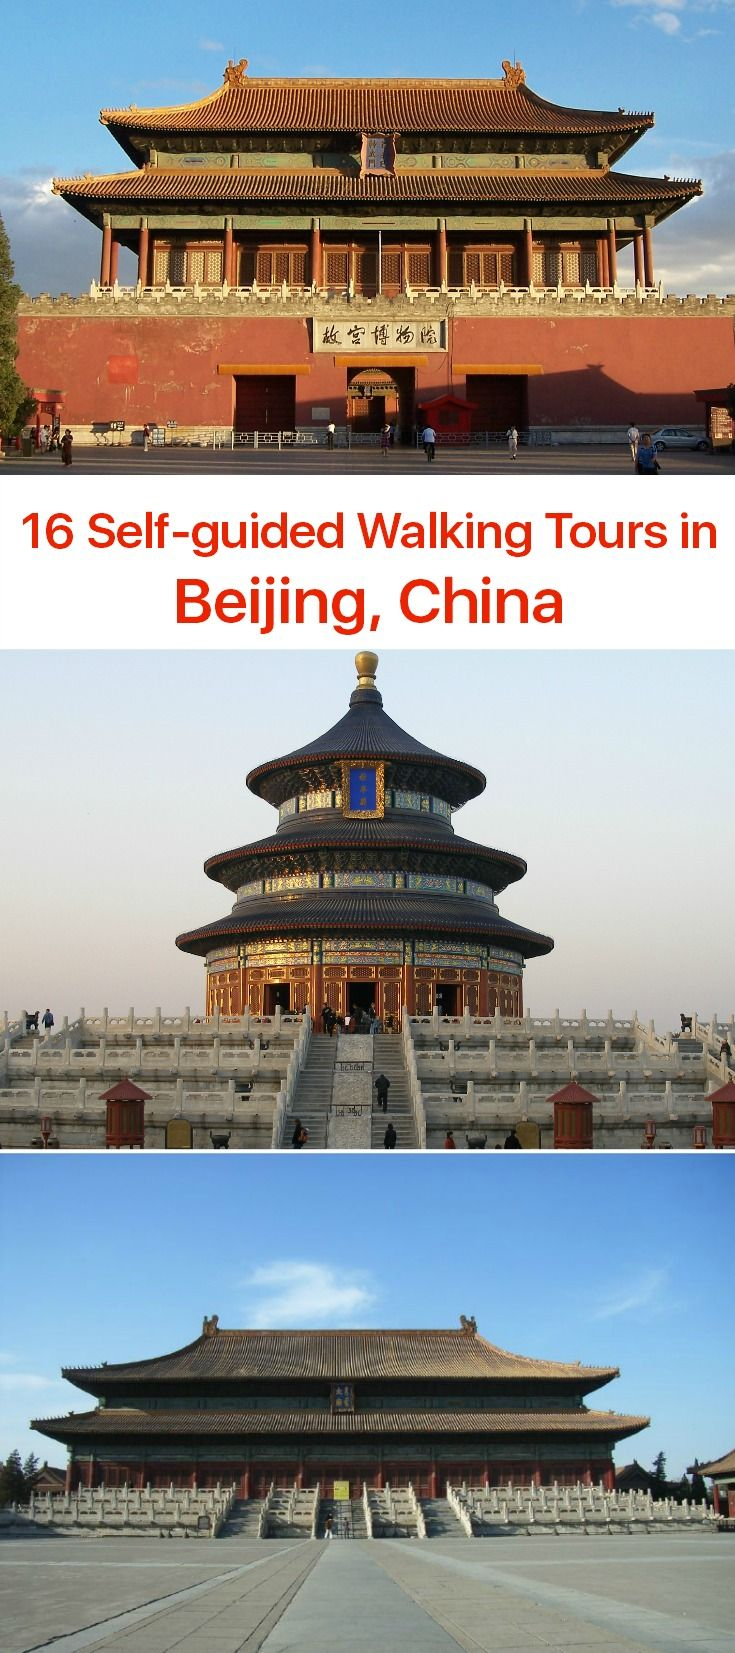 China's capital Beijing is a colossal metropolis that has been in place for more than 3 thousand years. The city's architecture is a mix of modern and ancient  buildings, including the magnificent Forbidden City complex – home of Chinese emperors.